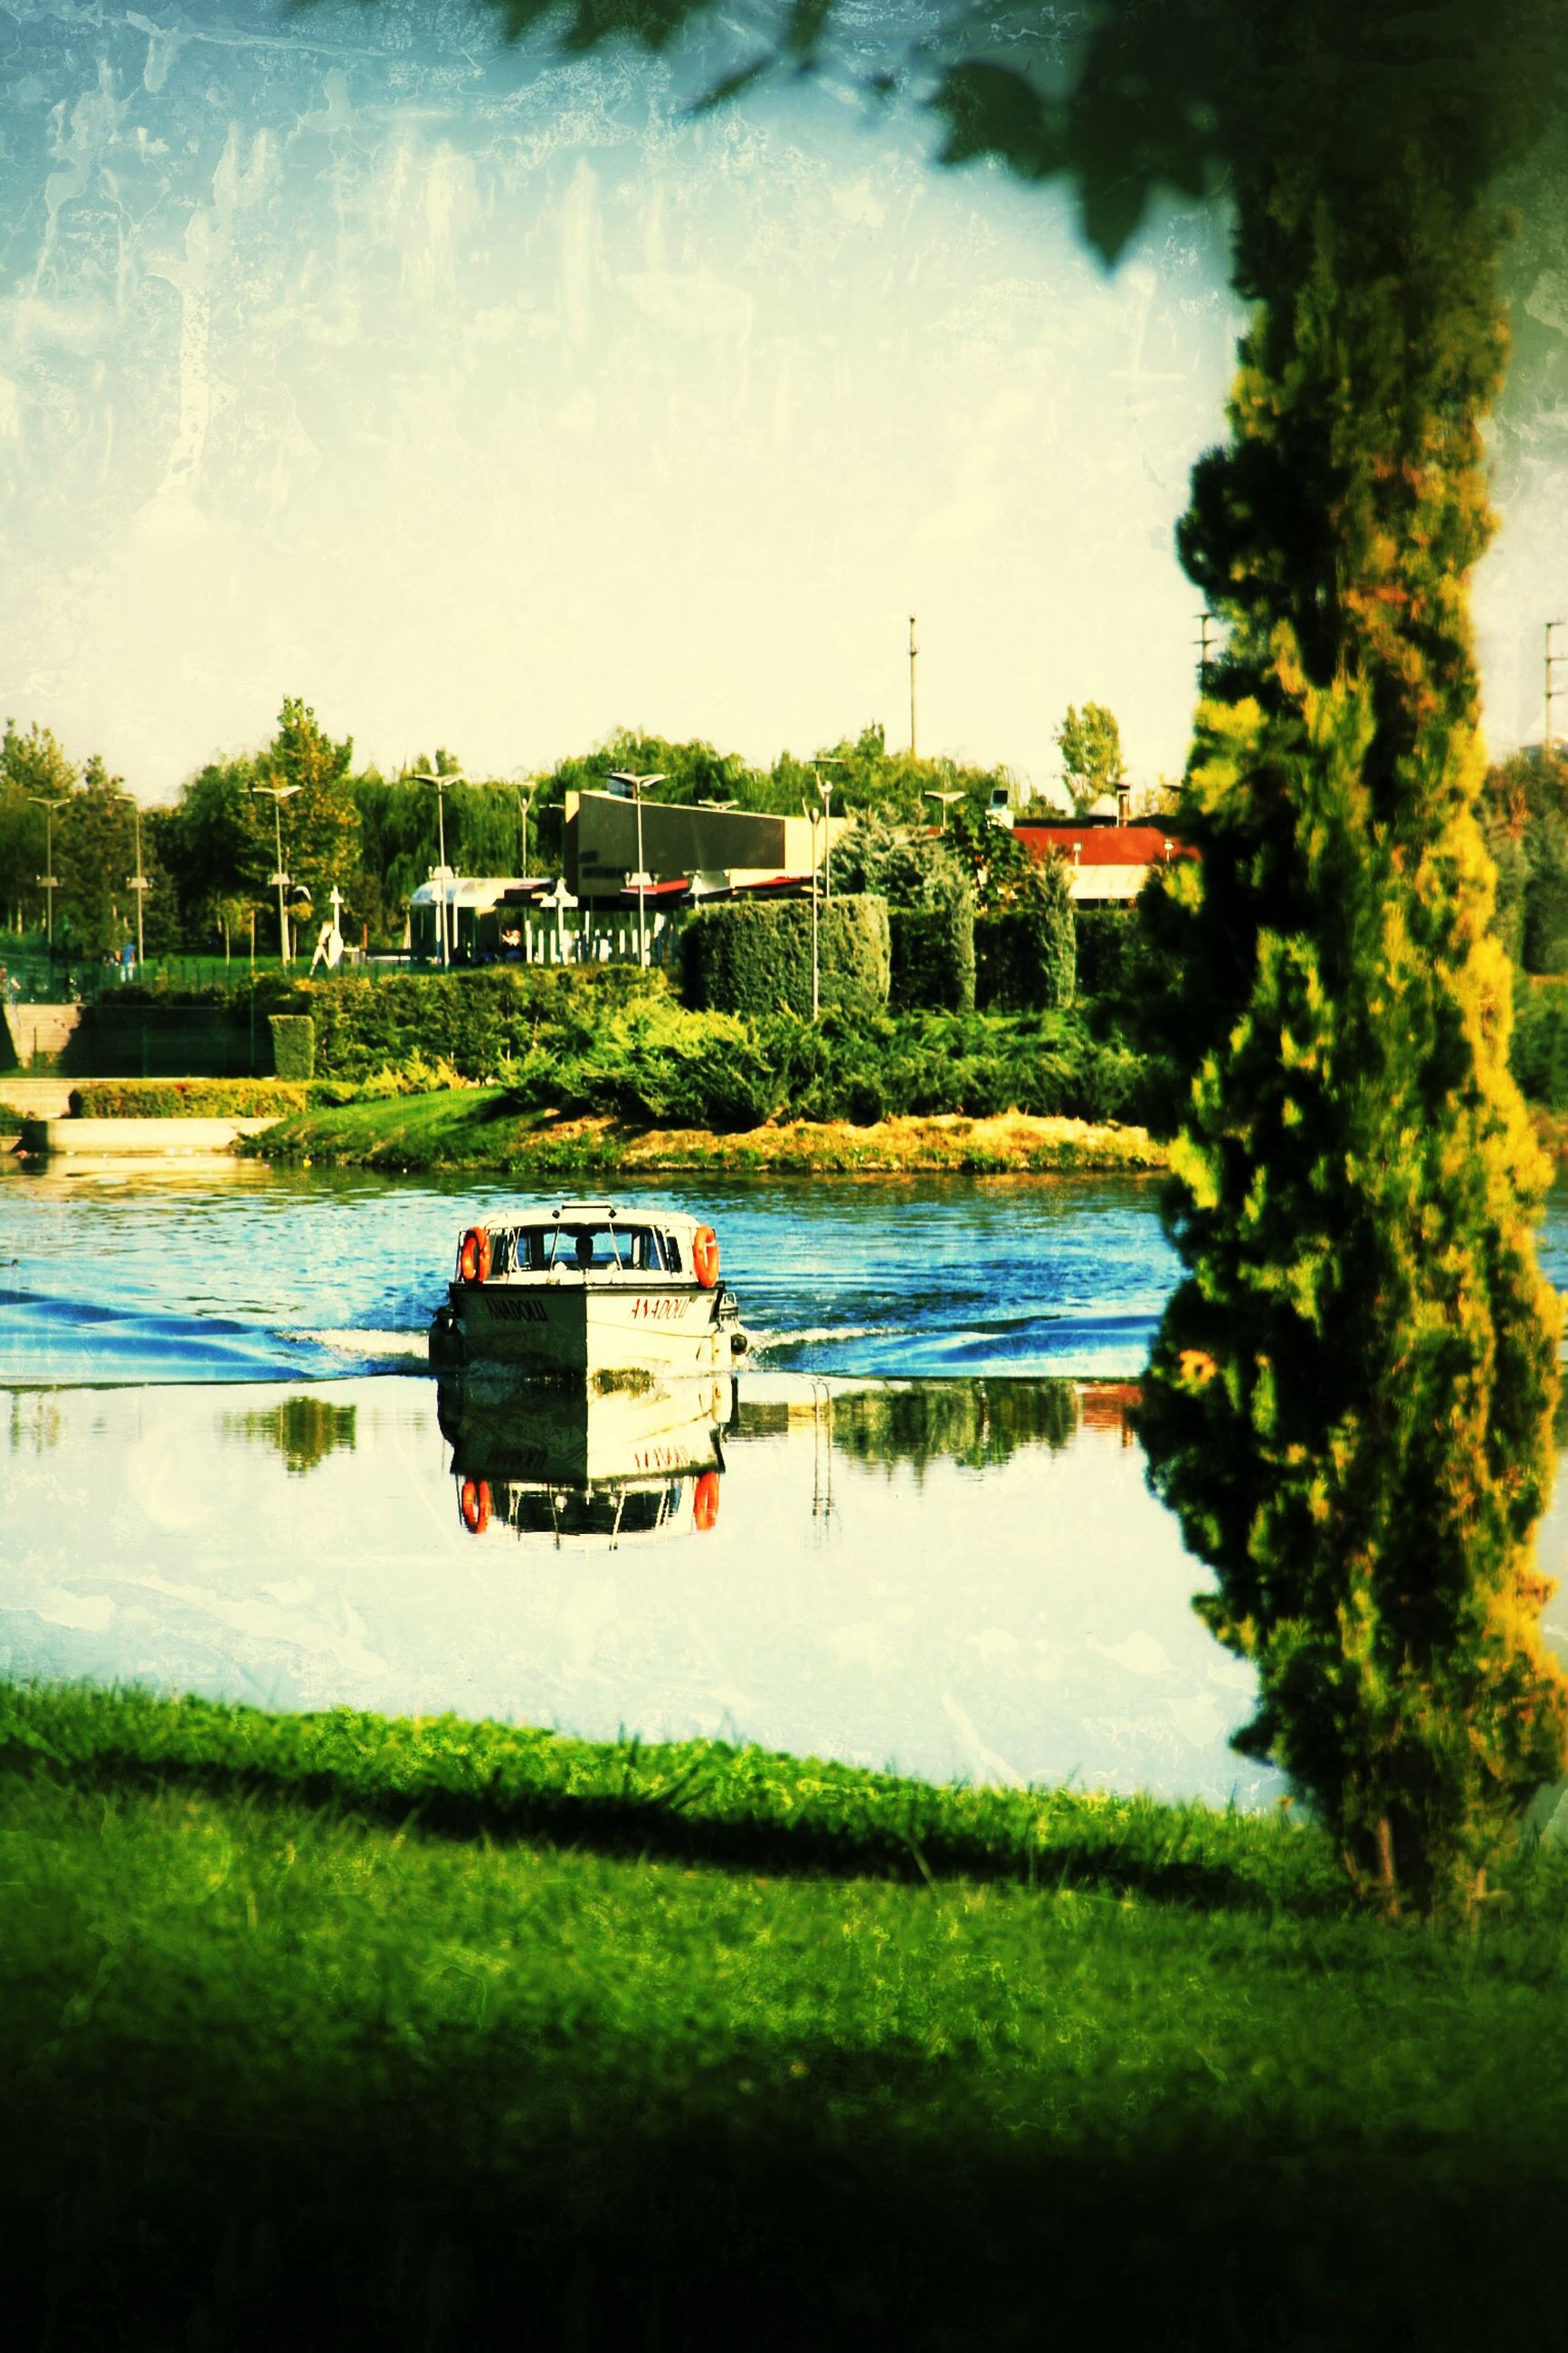 water, transportation, mode of transport, tree, nautical vessel, grass, boat, lake, reflection, green color, moored, river, nature, growth, sky, tranquility, day, tranquil scene, plant, outdoors